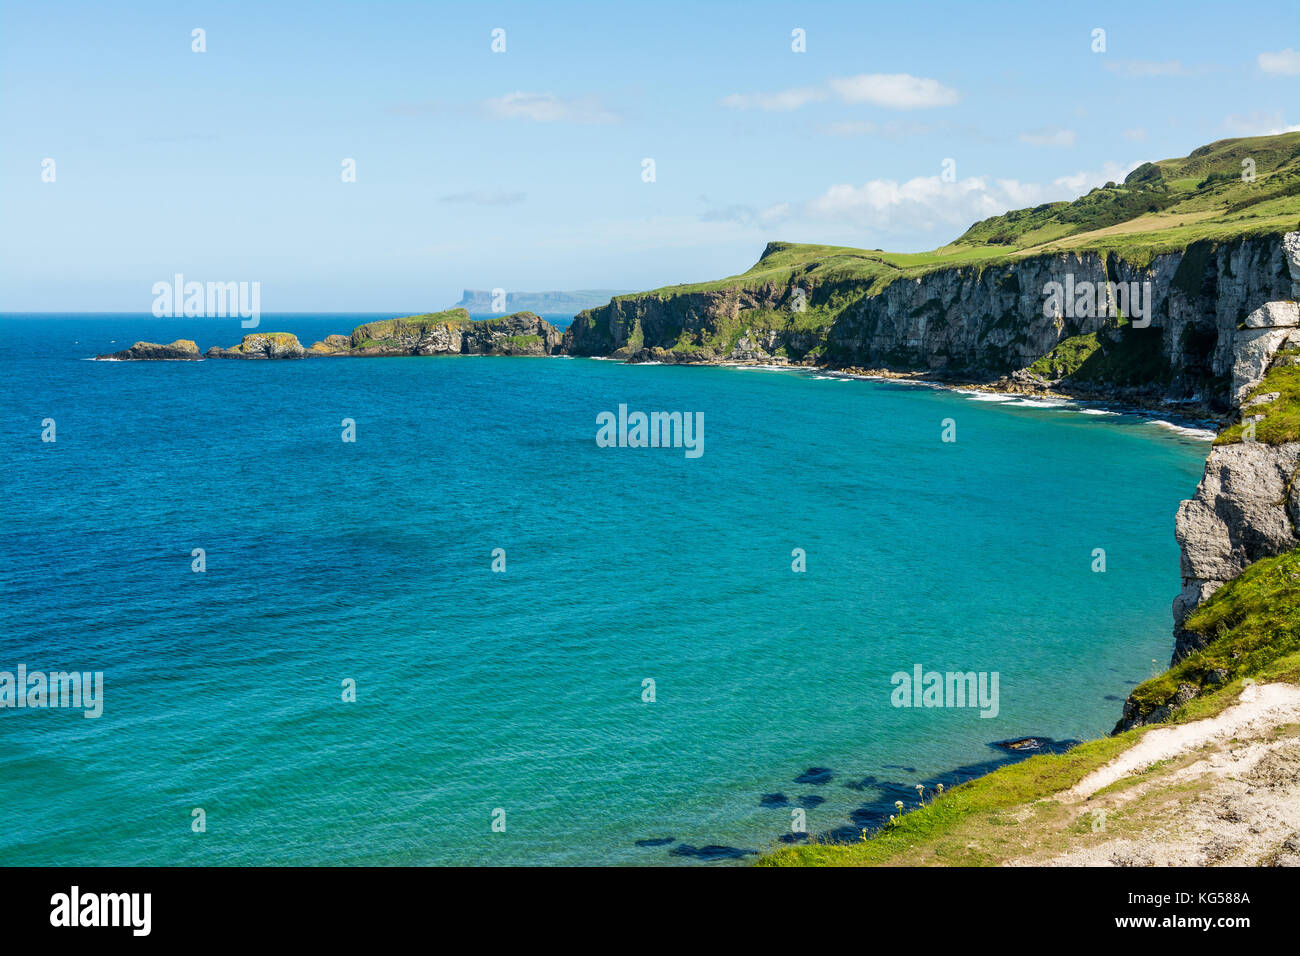 Landascapes of Ireland. Carrick-a-rede, Northern Ireland - Stock Image